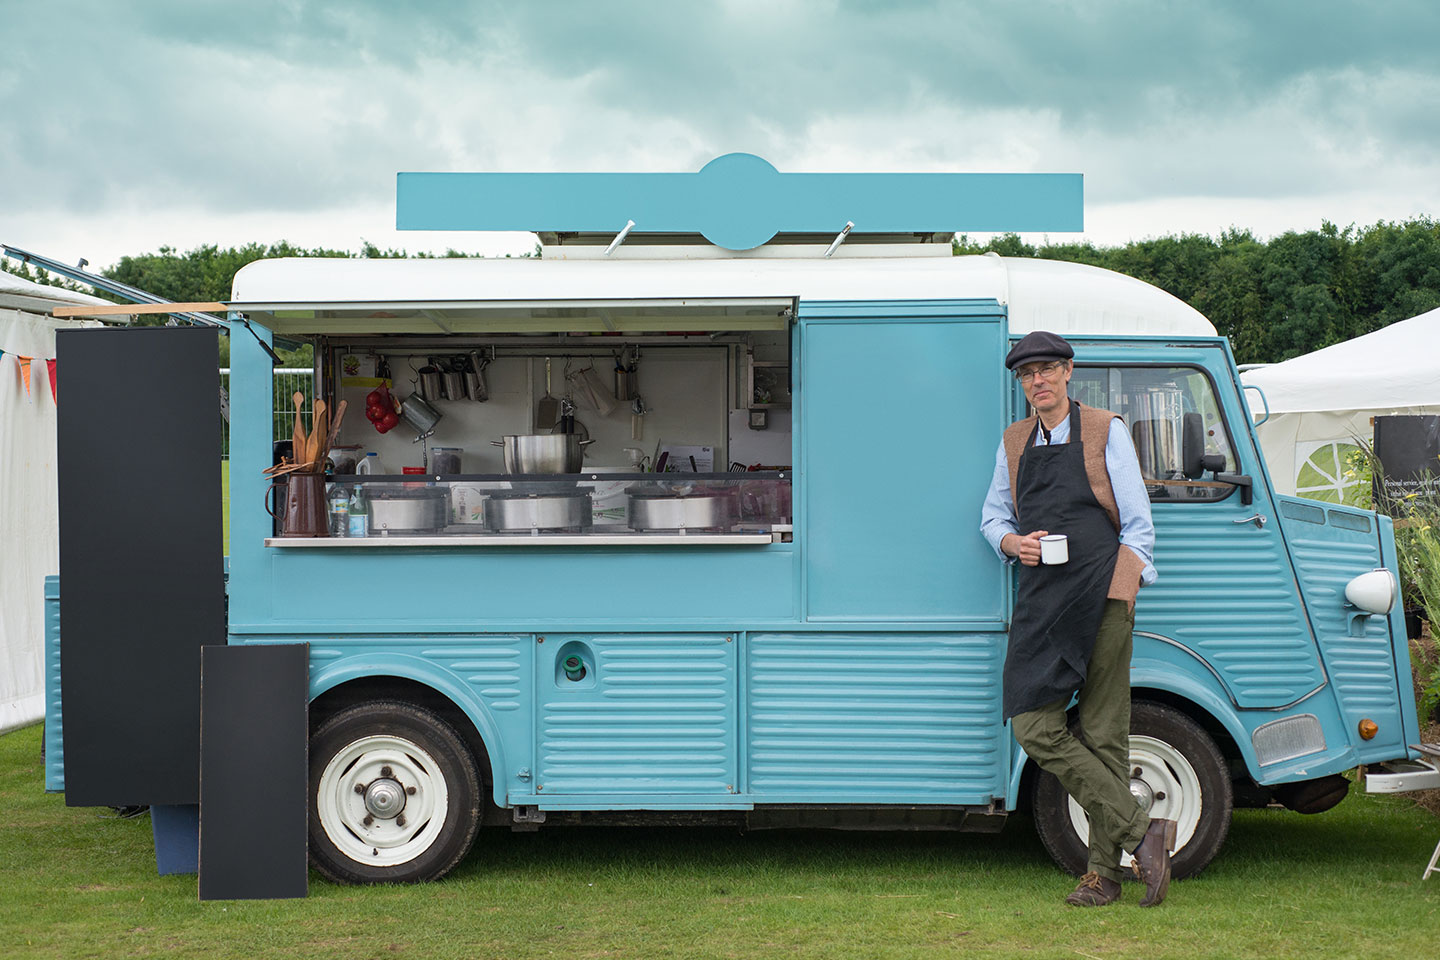 Great Wedding Reception Ideas: Food Trucks